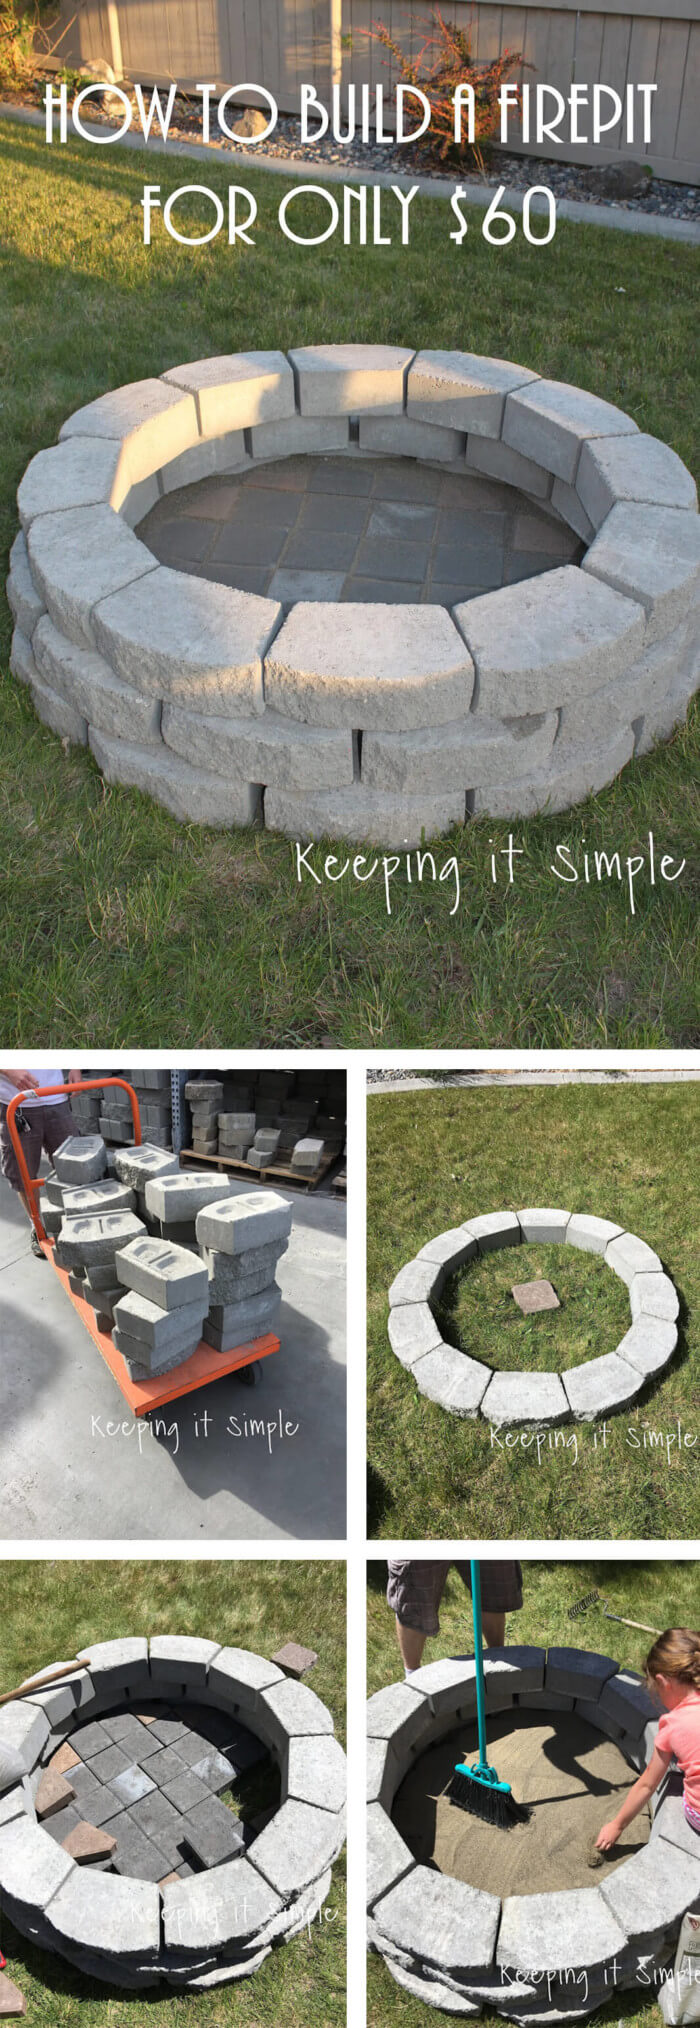 Incredible gravel fire pit area ideas to make s'mores with your family